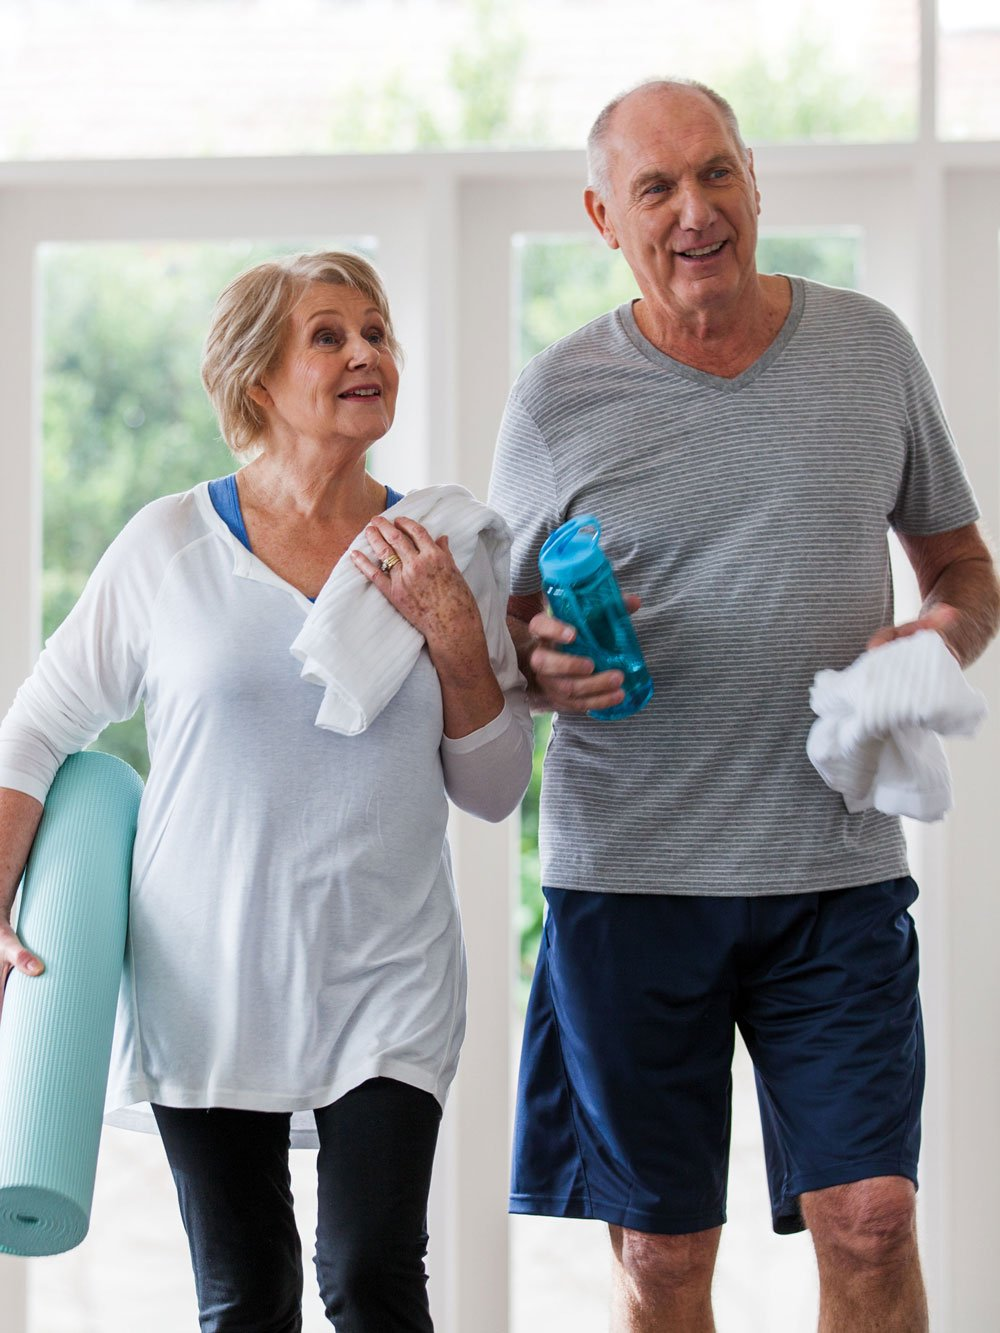 Senior couple in active wear walking to gym to exercise at Strathalan Macleod